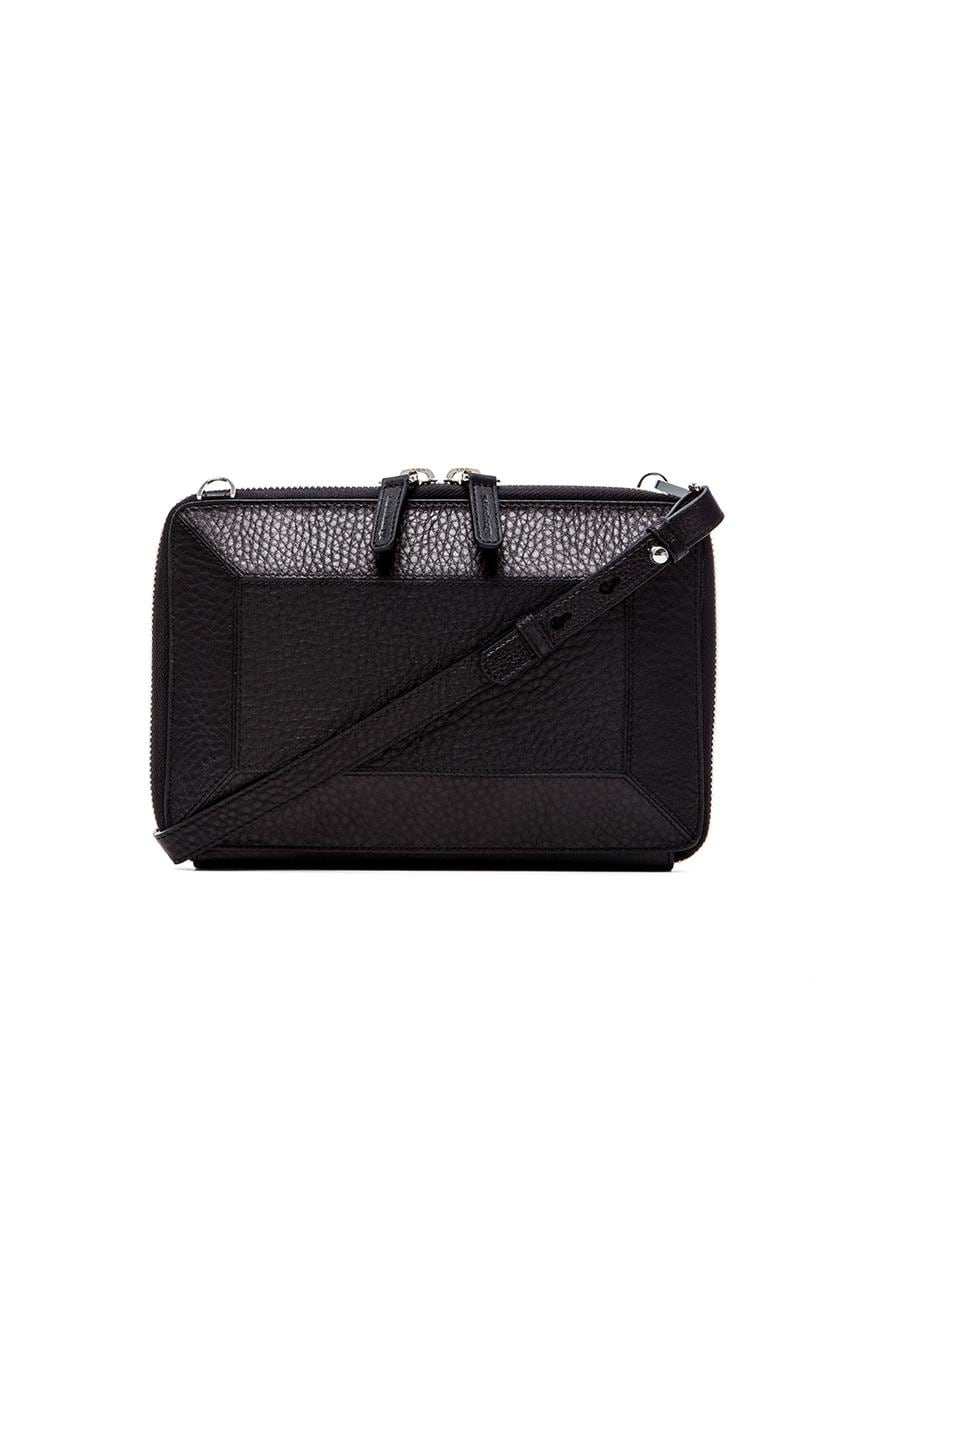 Mackage Roni Clutch in Black